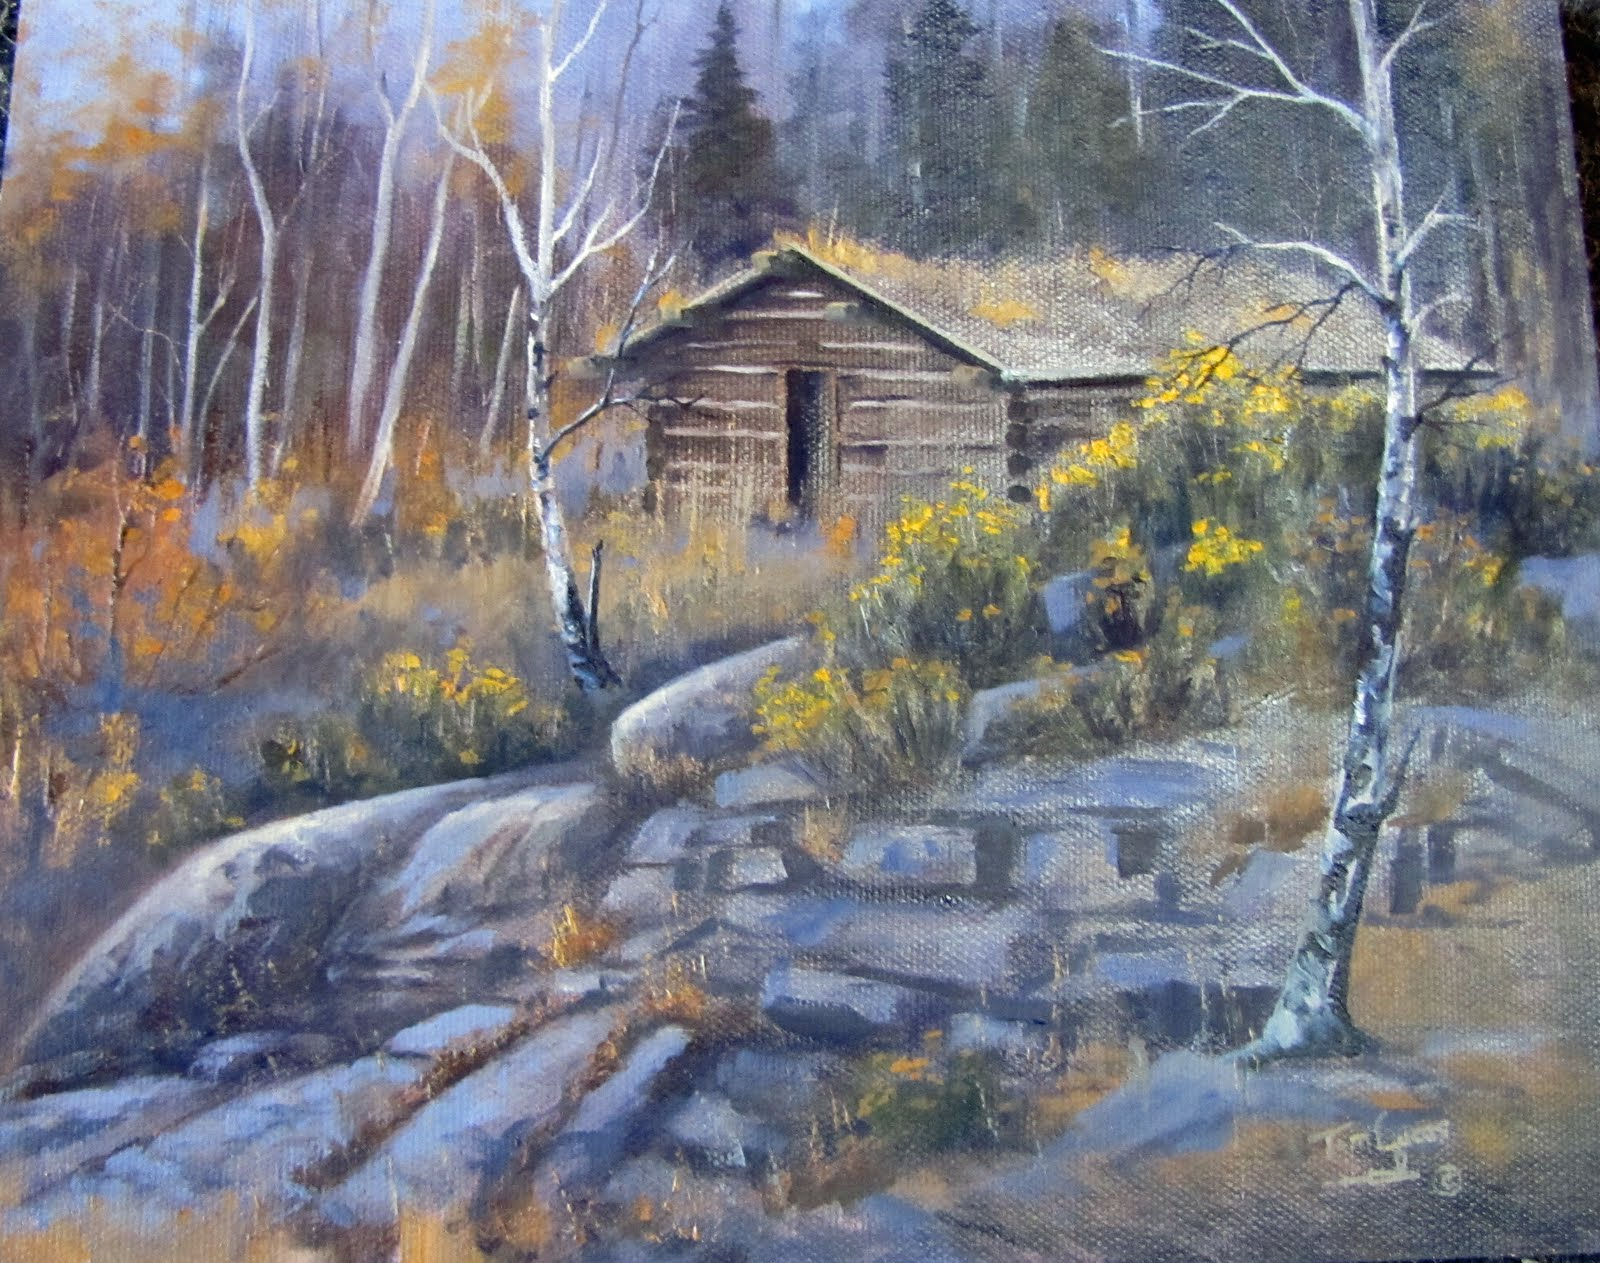 Log cabin in the woods painting - Log Cabin In The Woods Painting 57